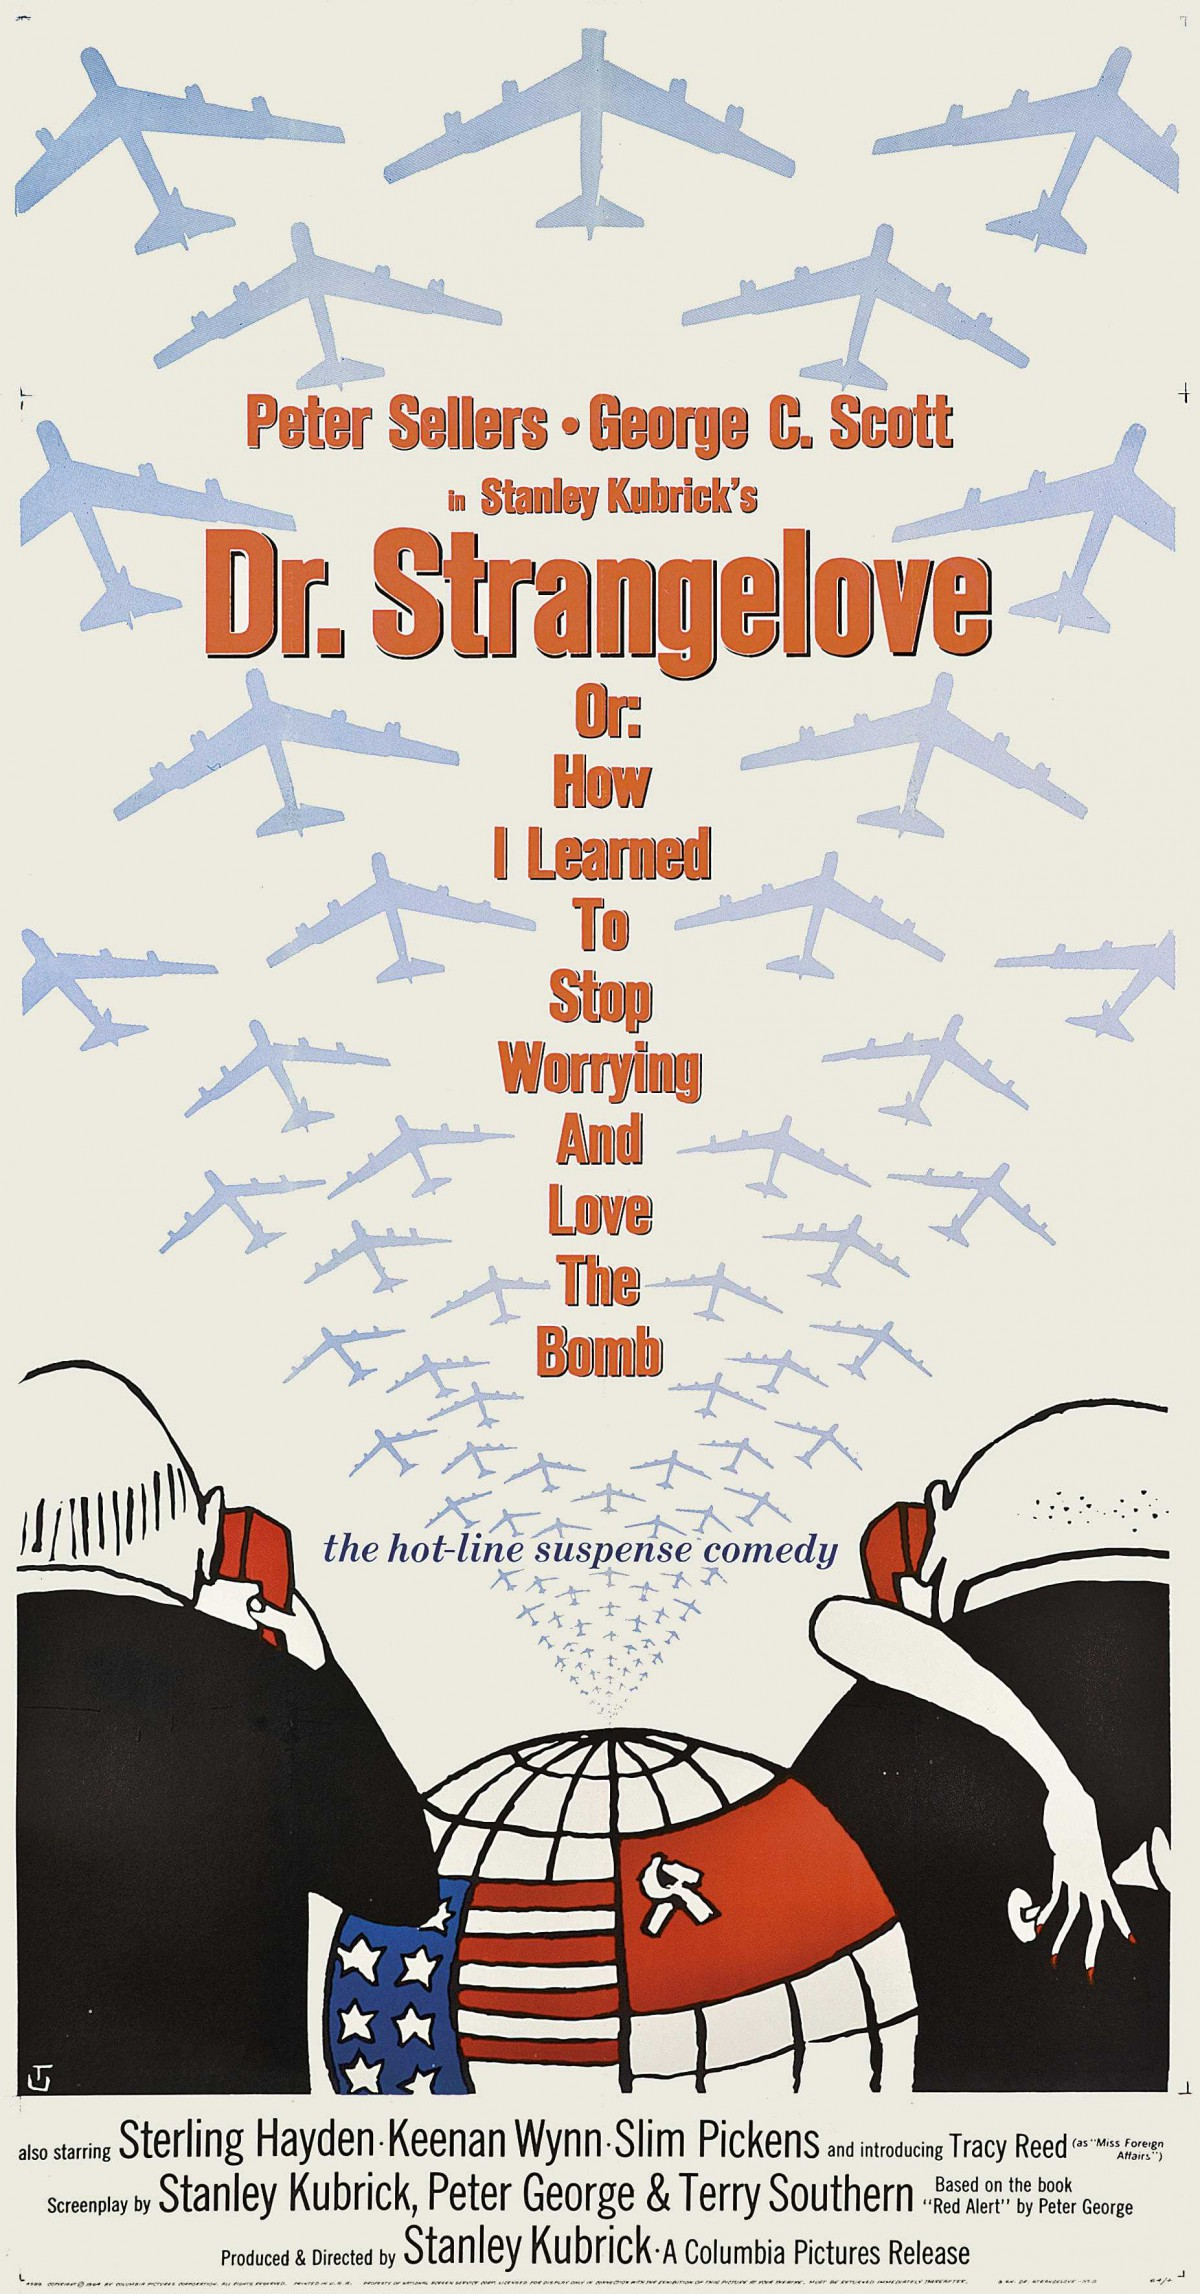 37. Dr. Strangelove or how I Learned to Stop Worrying and Love the Bomb (1964)